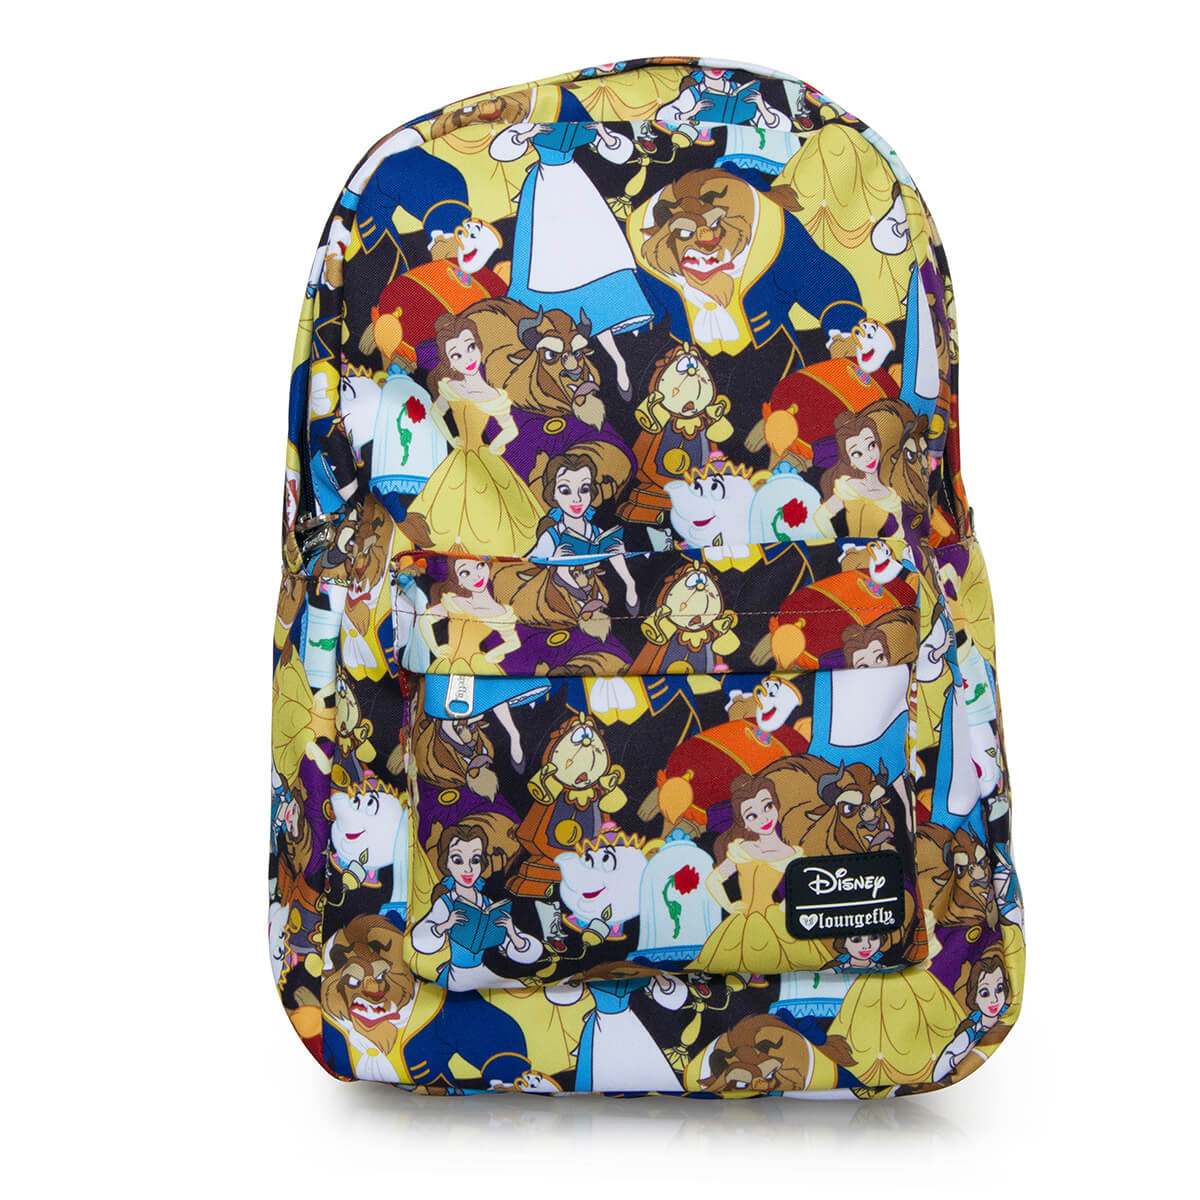 a9d009448f2 Loungefly Disney Beauty and the Beast AOP Backpack. Description